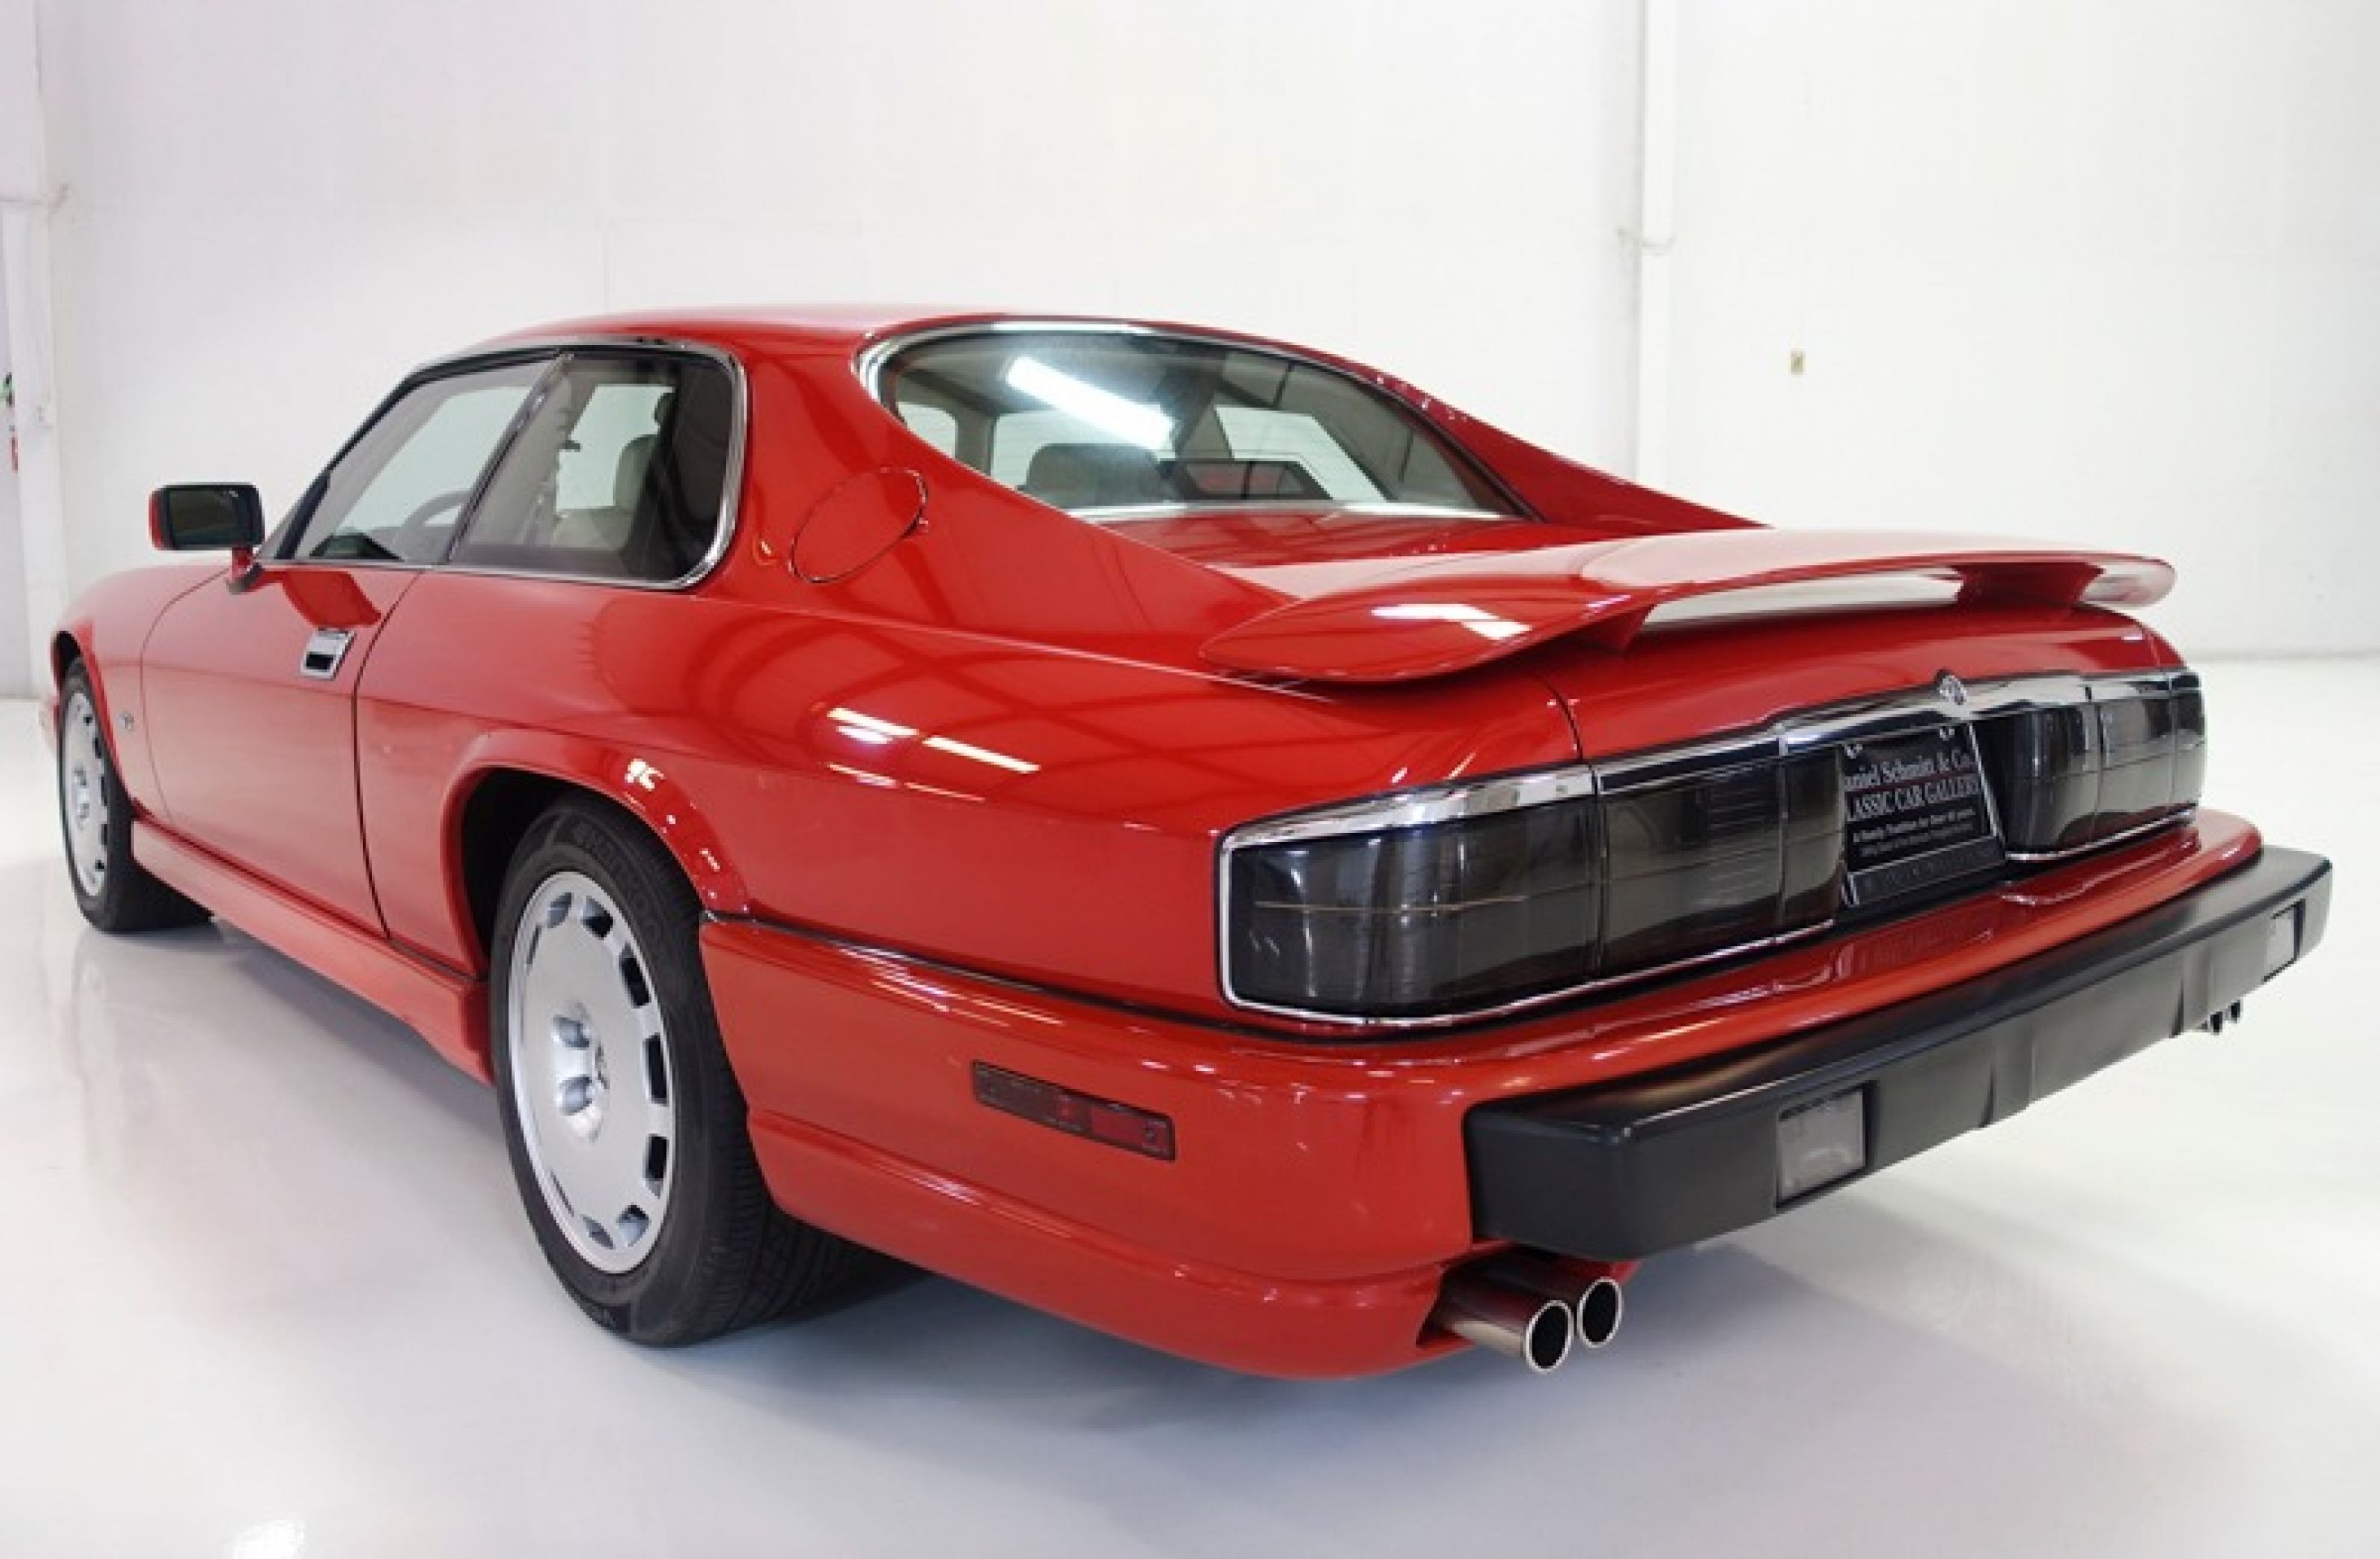 1993 Jaguar XJR-S 6.0L Limited Edition